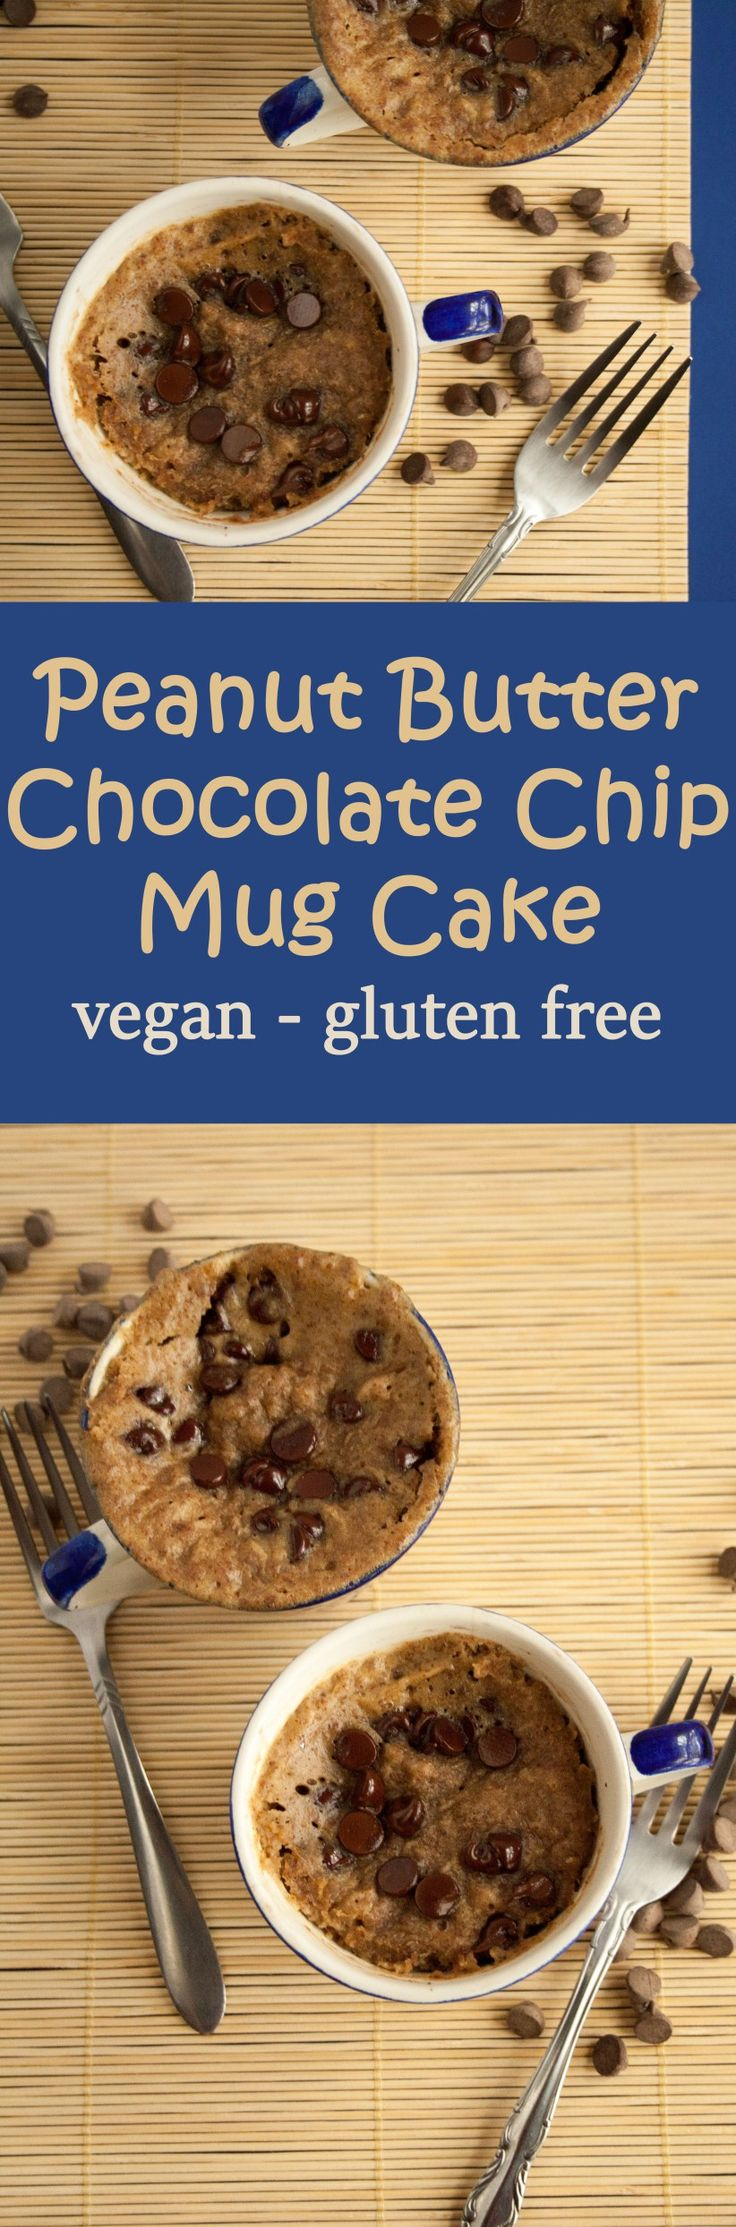 Peanut Butter Chocolate Chip Mug Cake (vegan, gluten free) - This moist mug cake is the perfect balance of sweet and savory with peanut butter and chocolate.